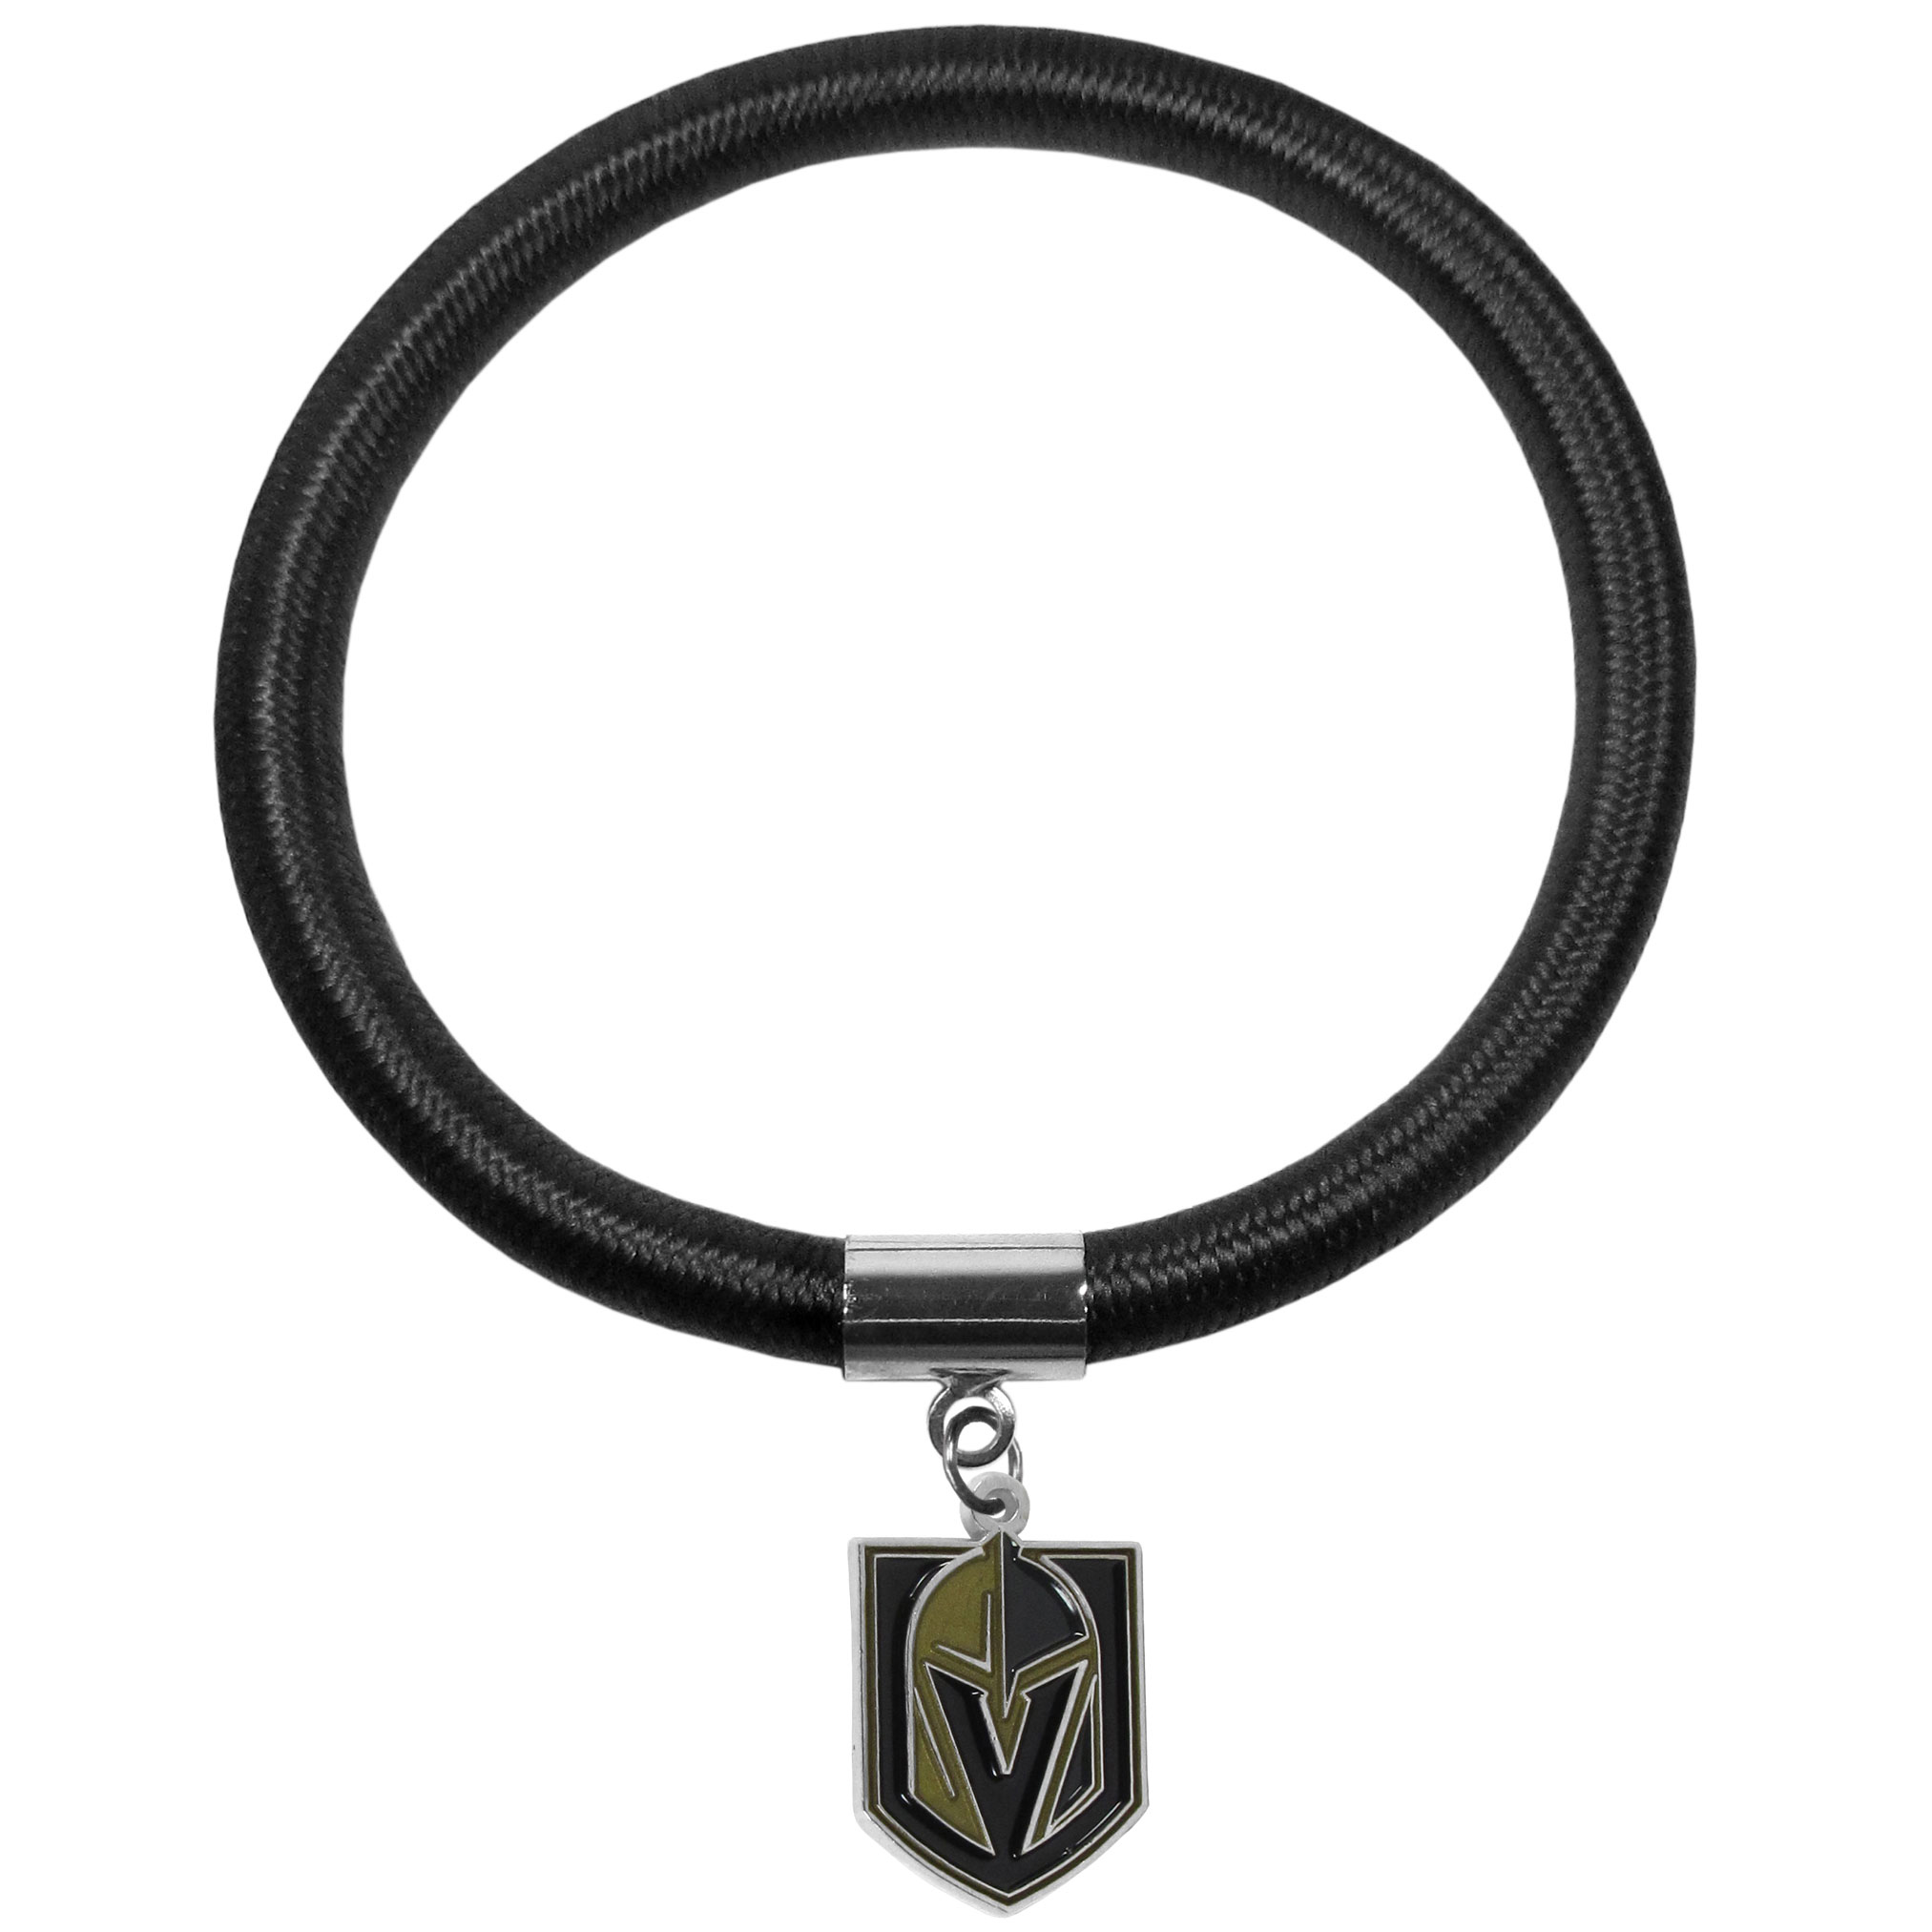 Vegas Golden Knights® Color Cord Bracelet - Our Vegas Golden Knights® color cord bracelet has an 8 inch, stretchy cord in the team's primary color. The cute cord bracelet features a metal team charm with expertly enameled team colors. The bracelet is fun and eye-catching making it a perfect game day accessory while being stylish enough for everyday wear.